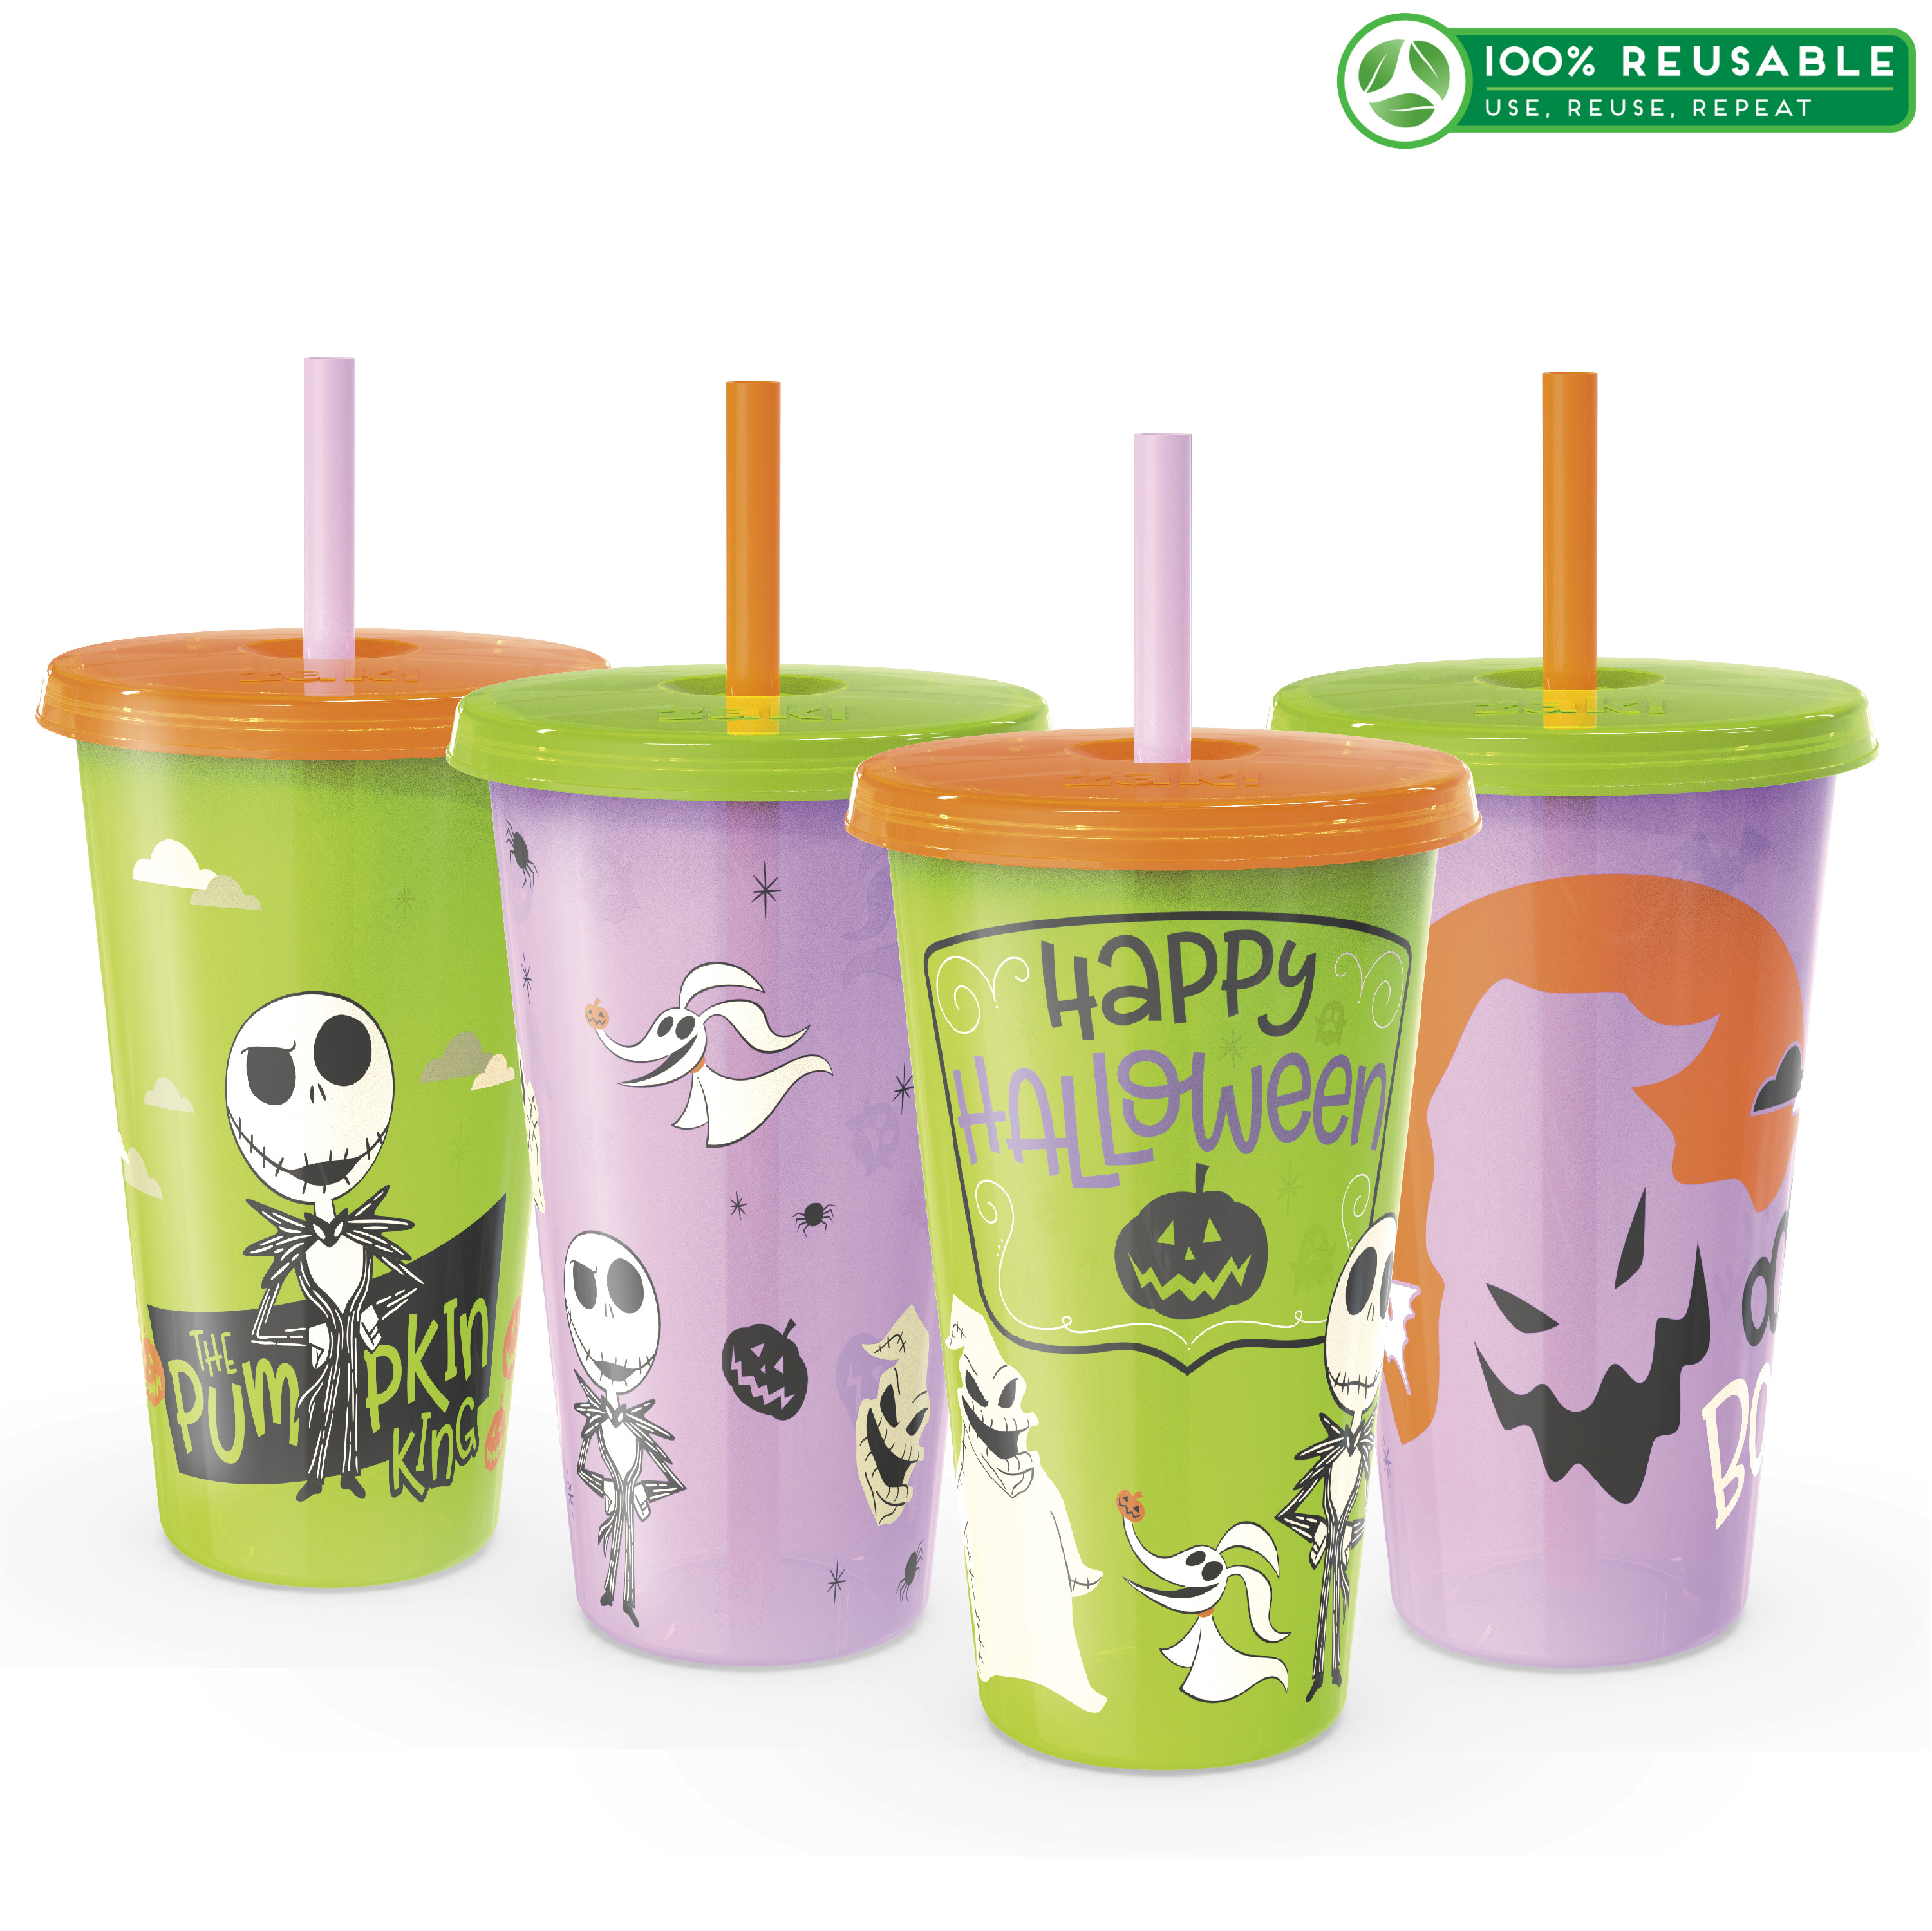 The Nightmare Before Christmas 24 ounce Reusable Plastic Kids Tumbler, Jack Skellington, Oogie Boogie & Zero, 4-piece set slideshow image 1